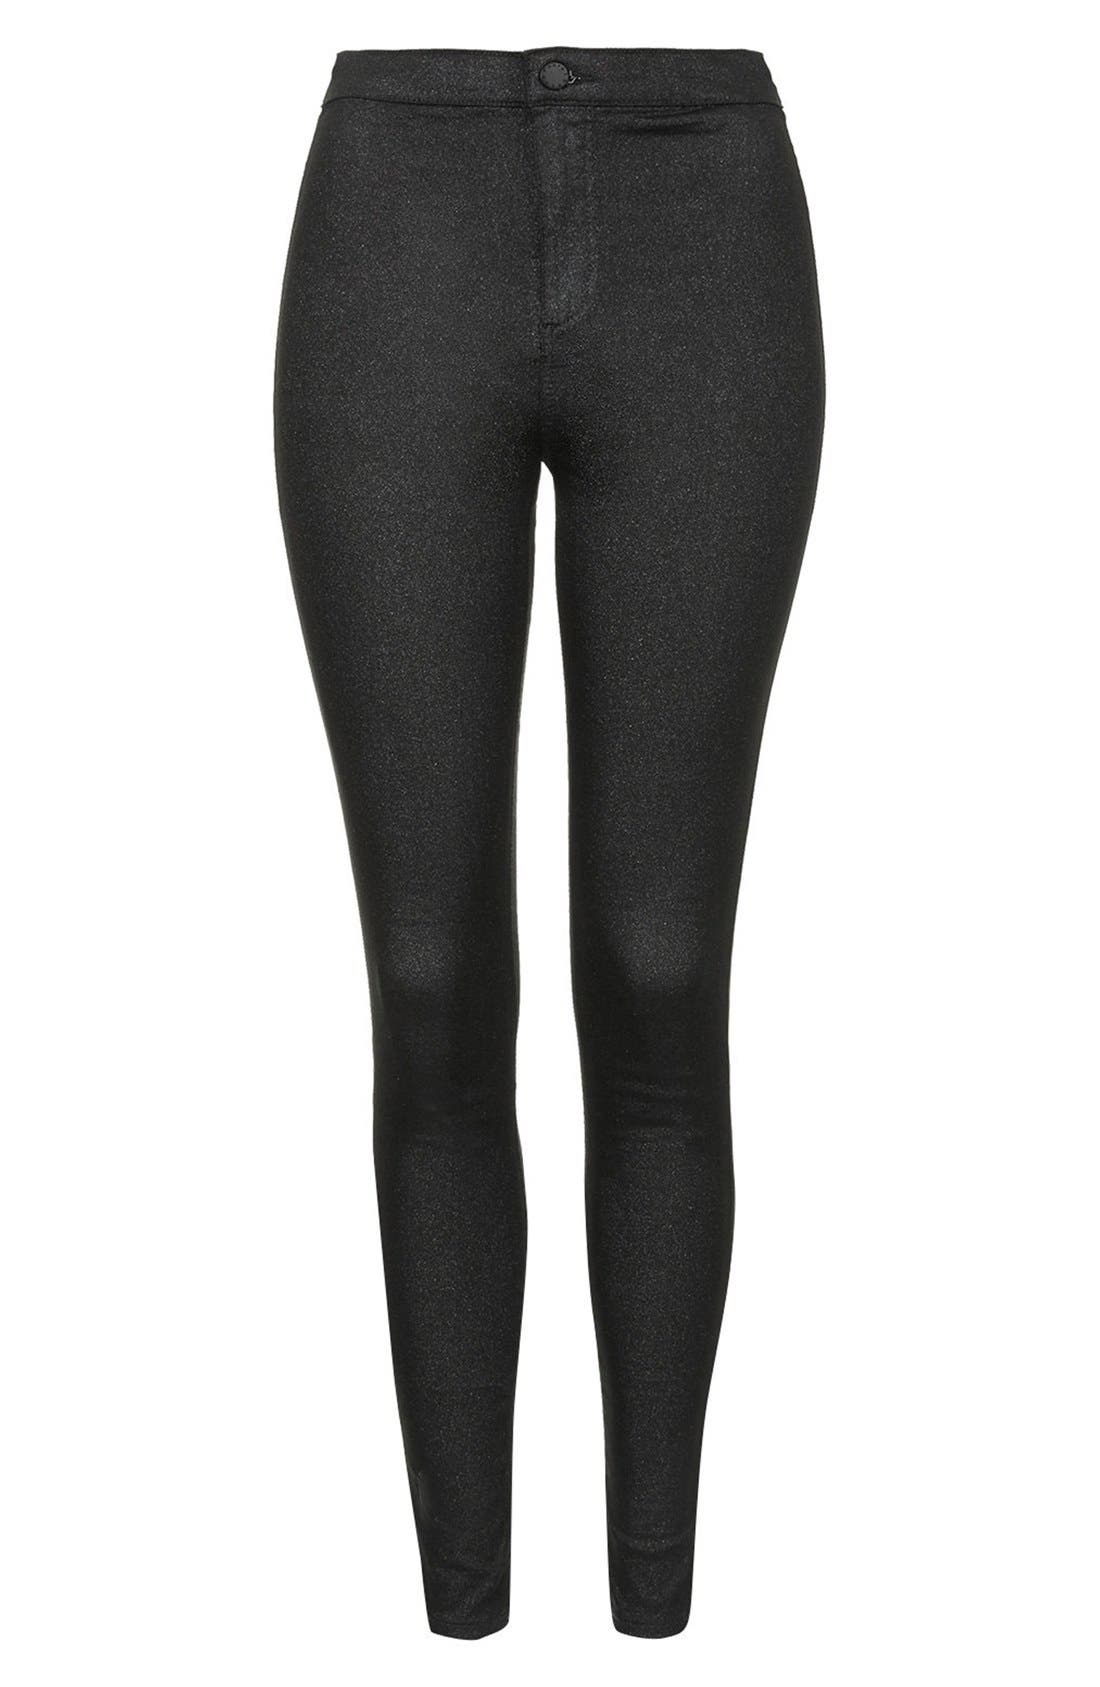 Alternate Image 3  - Topshop Moto 'Joni' Glitter Skinny Jeans (Black) (Regular, Short & Long)